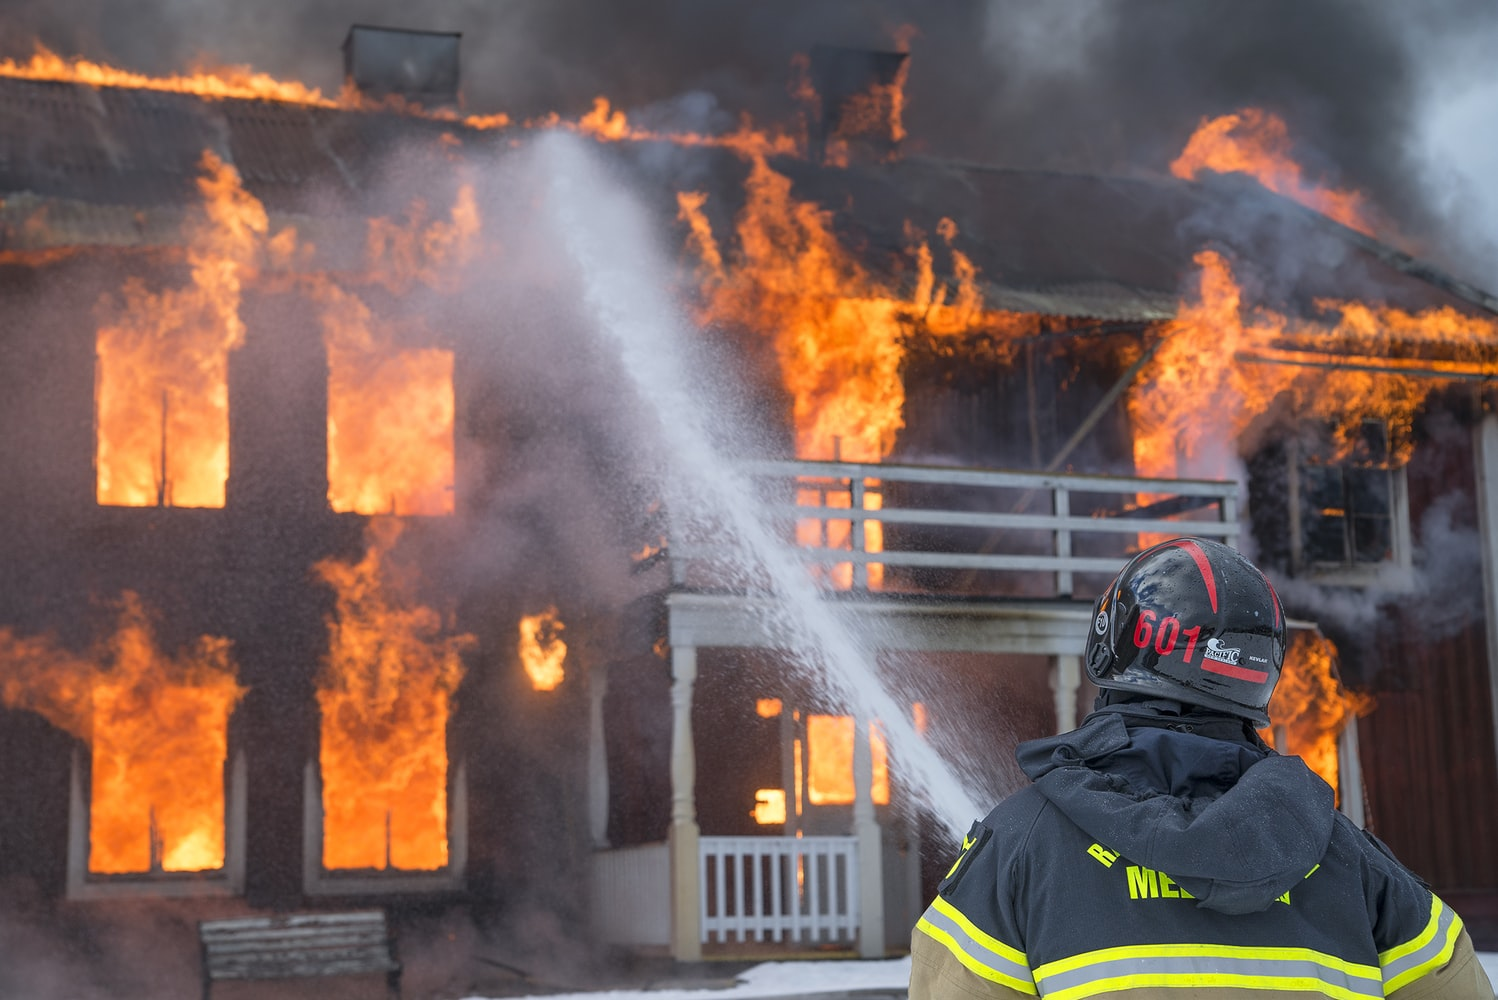 Firefighter who puts out house fire took fire safety classes online with LMS eLearning platform